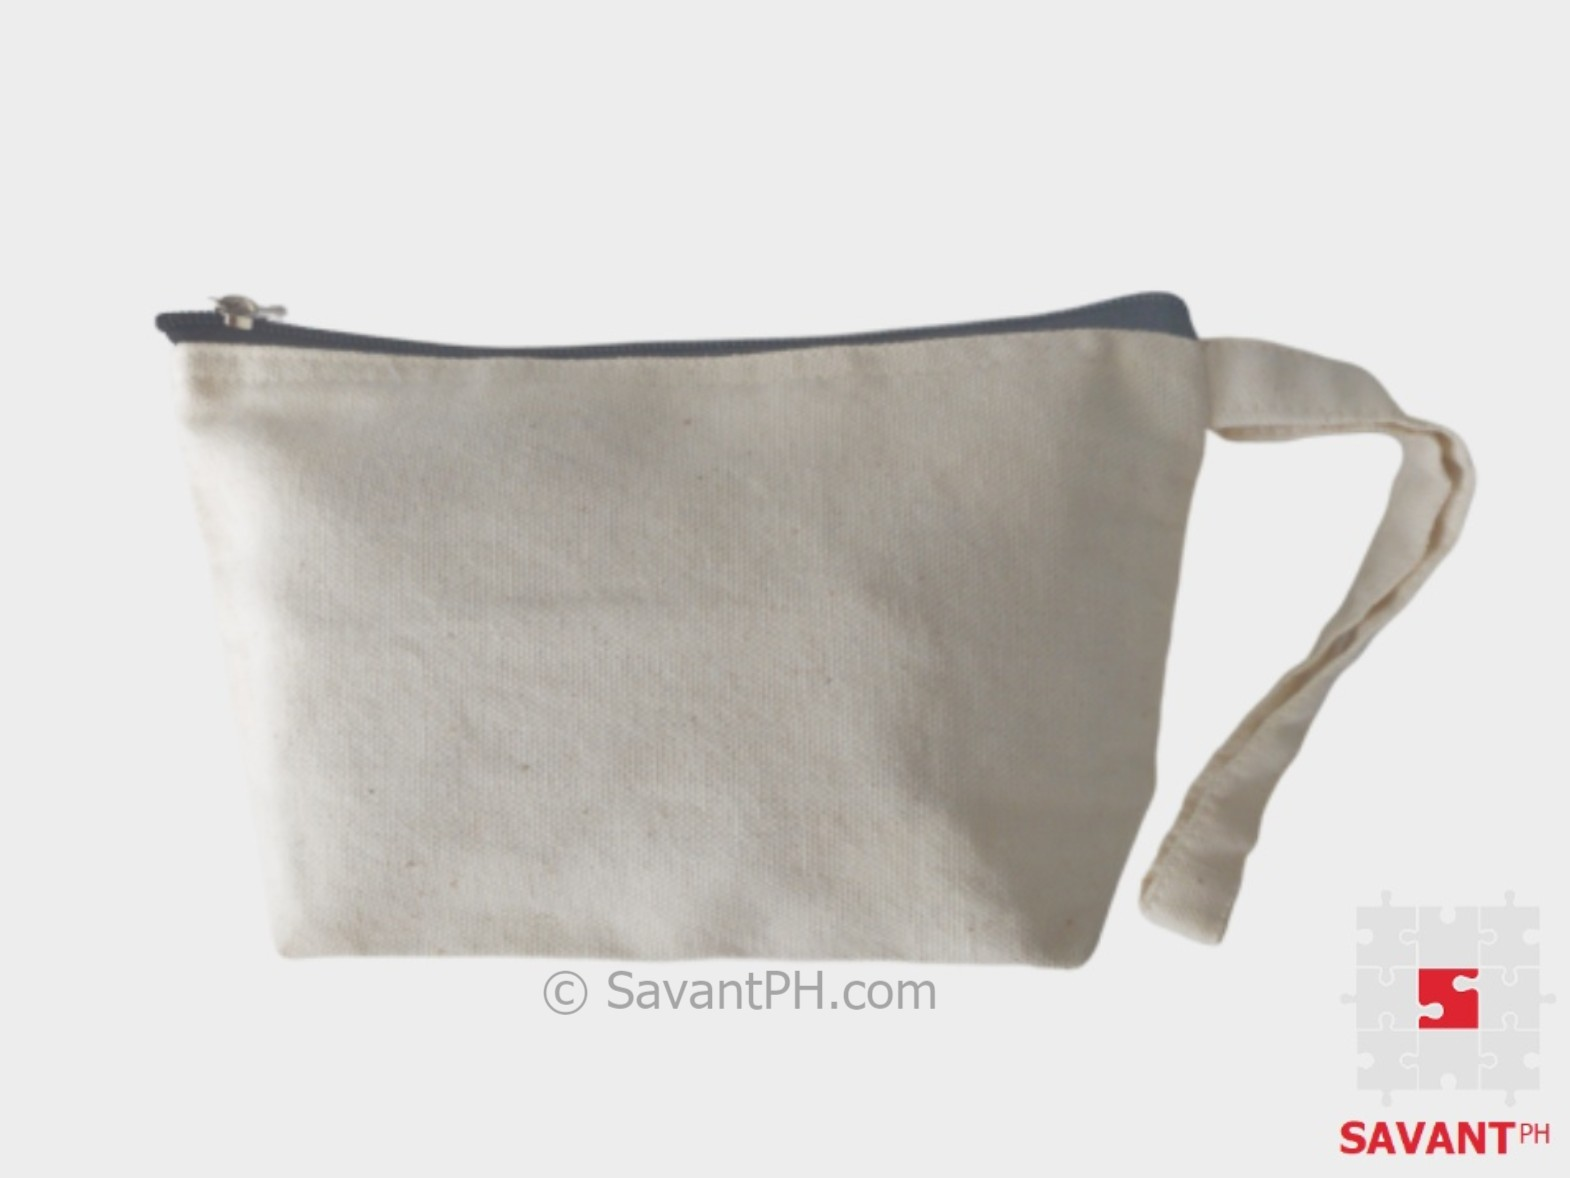 https://www.savantph.com/2019/08/plain-canvas-cosmetic-pouch.html